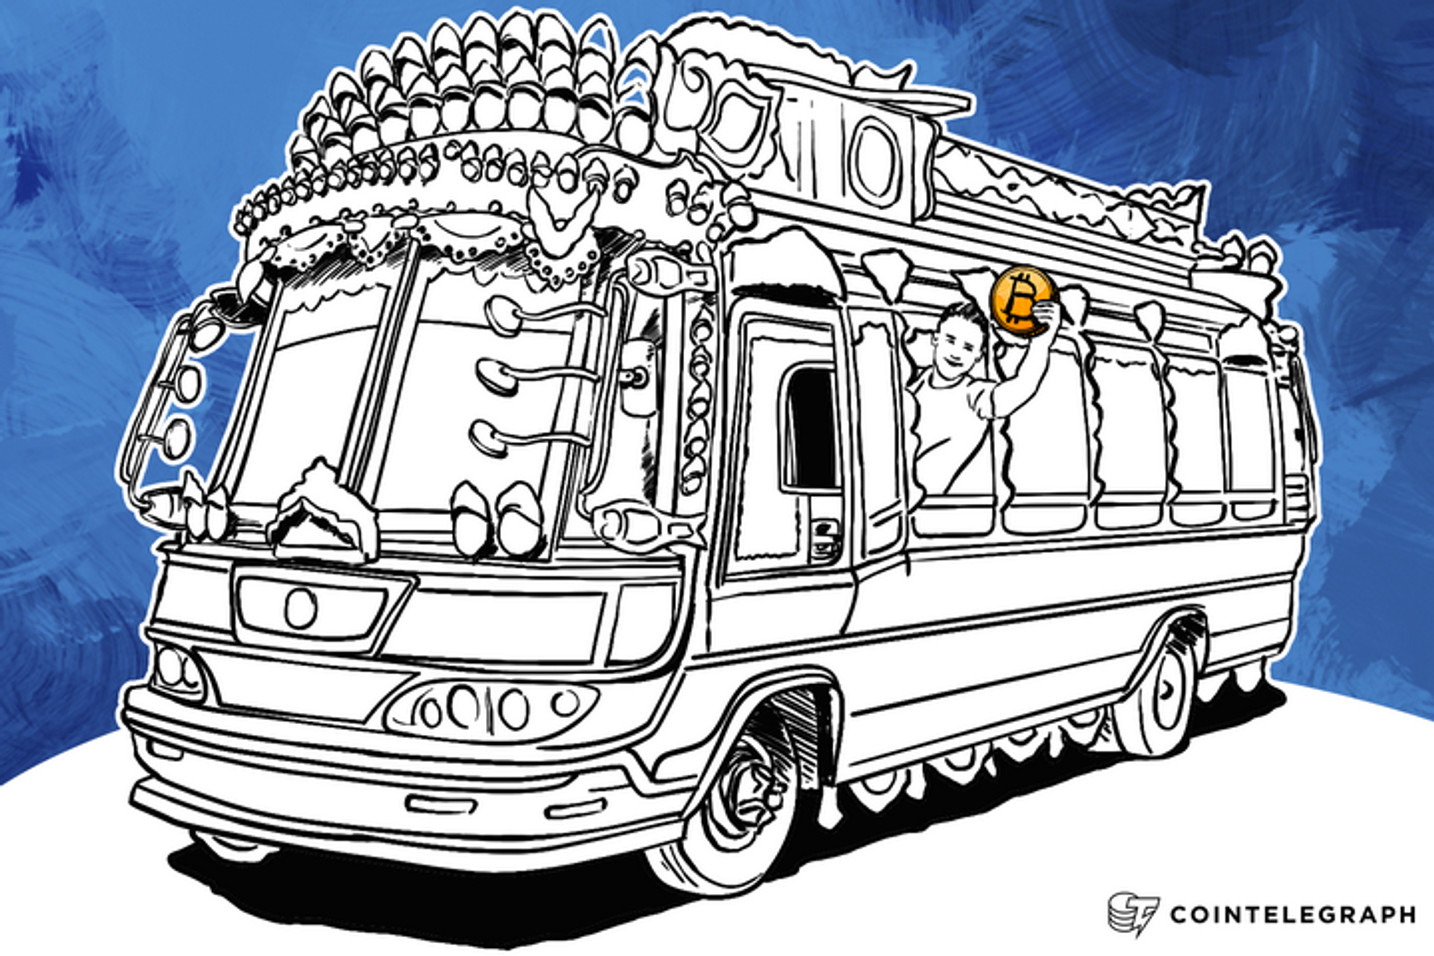 eTravelSmart Partners with Unocoin to Allow Indians to Purchase Bus Tickets with Bitcoin